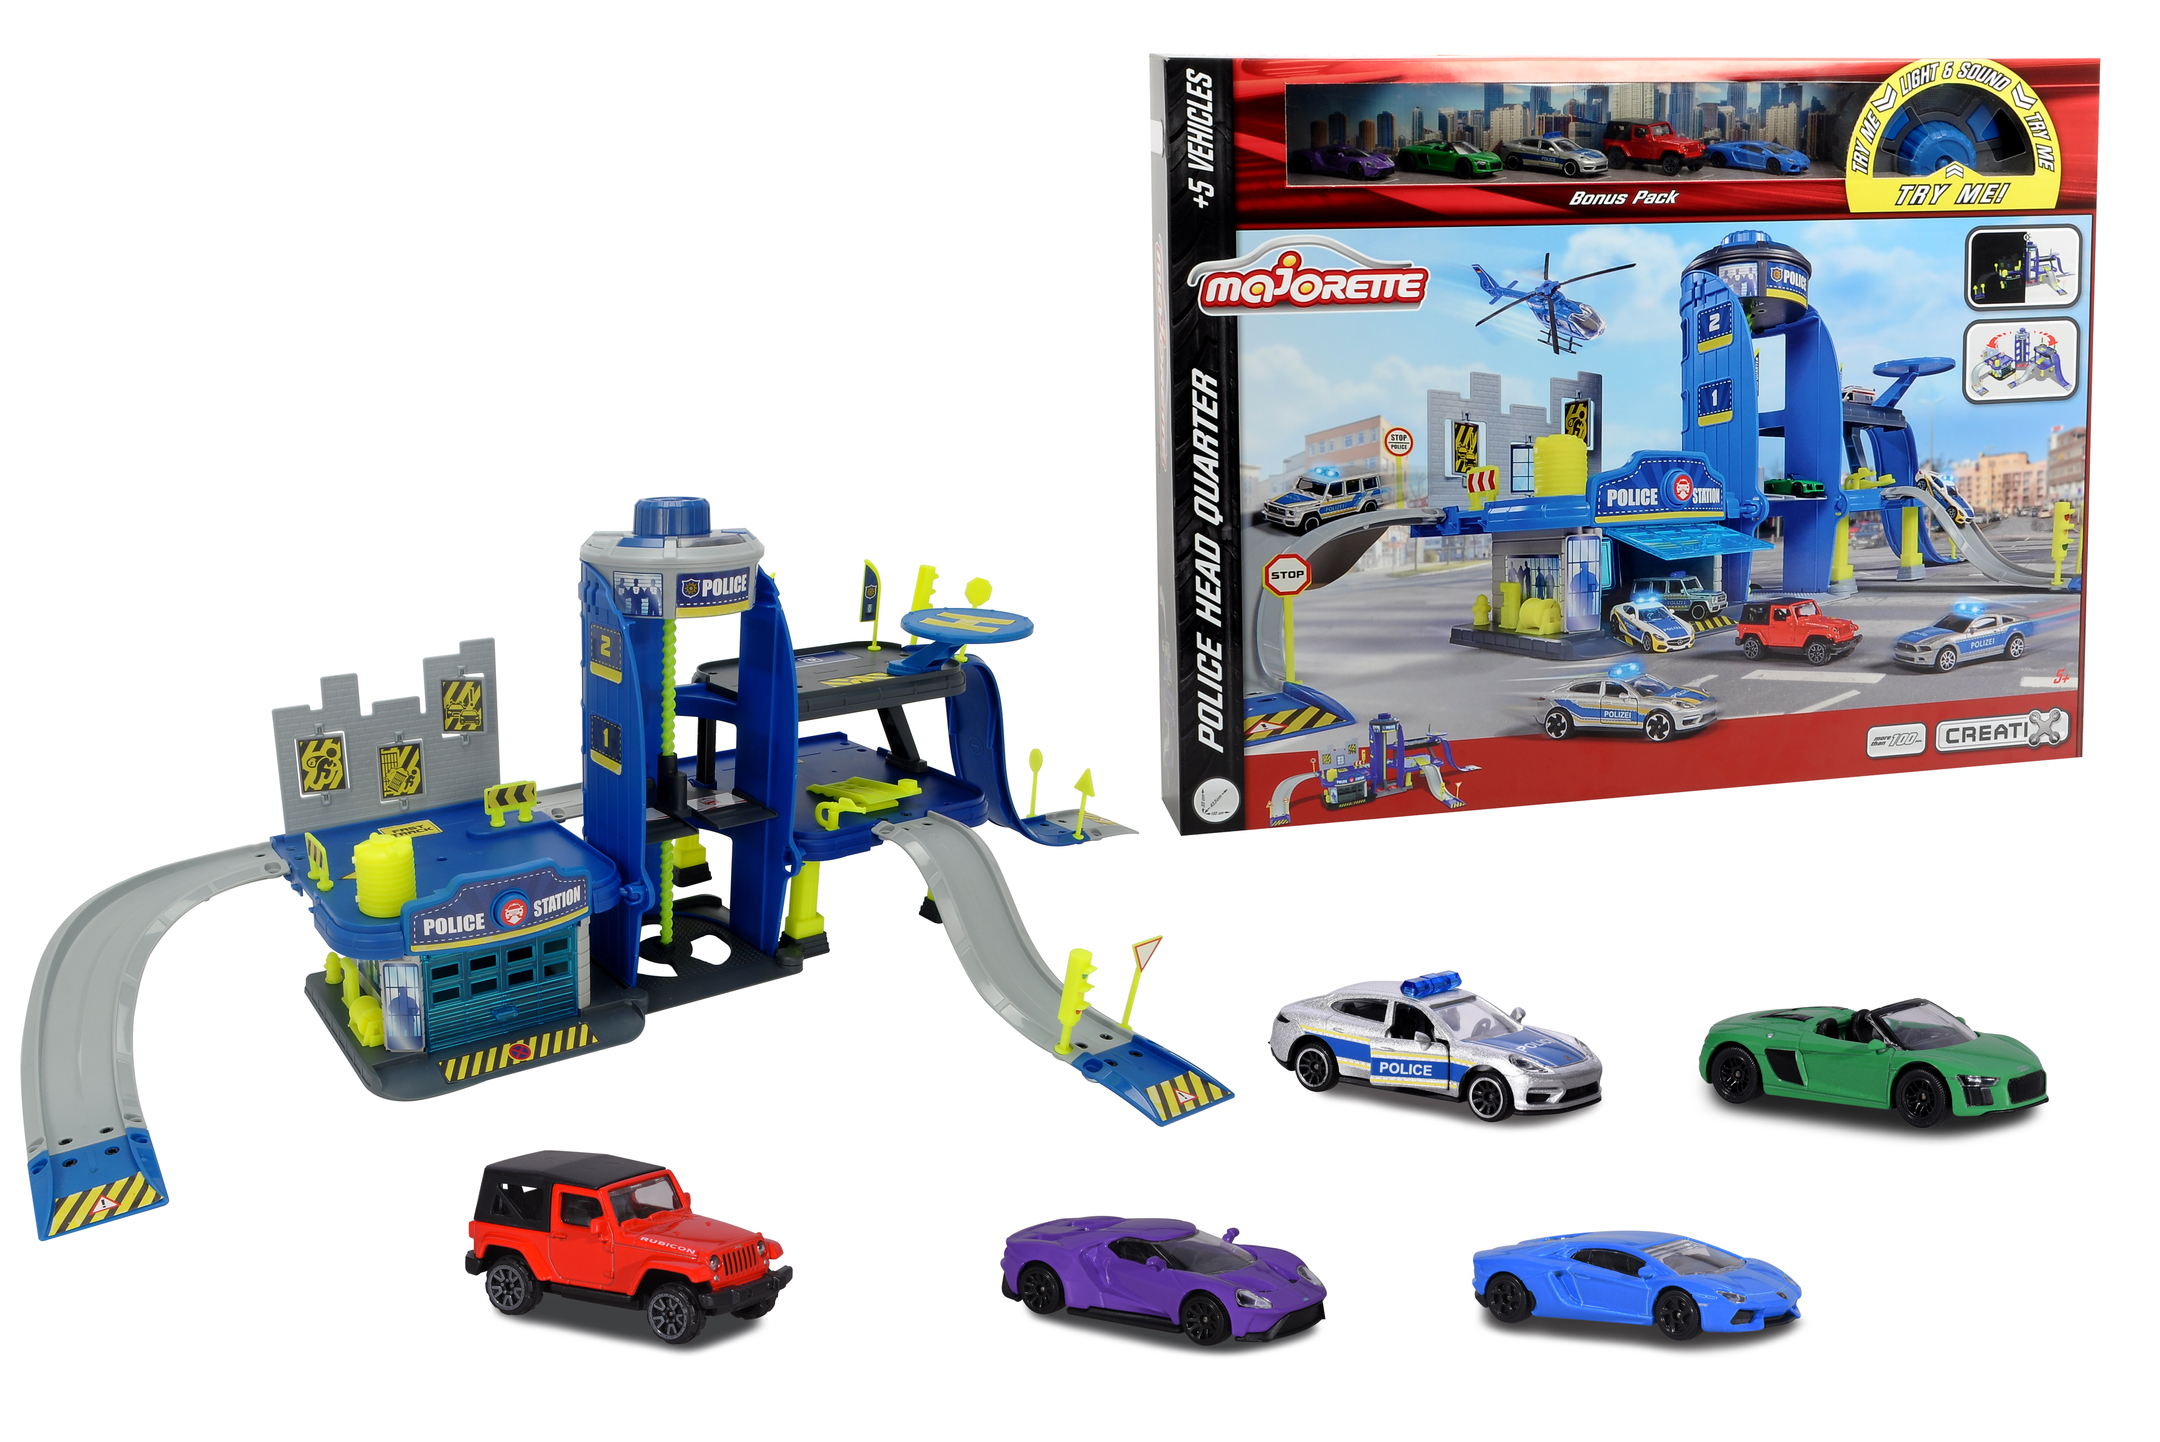 Creatix Polizei Playset+5 vehicles